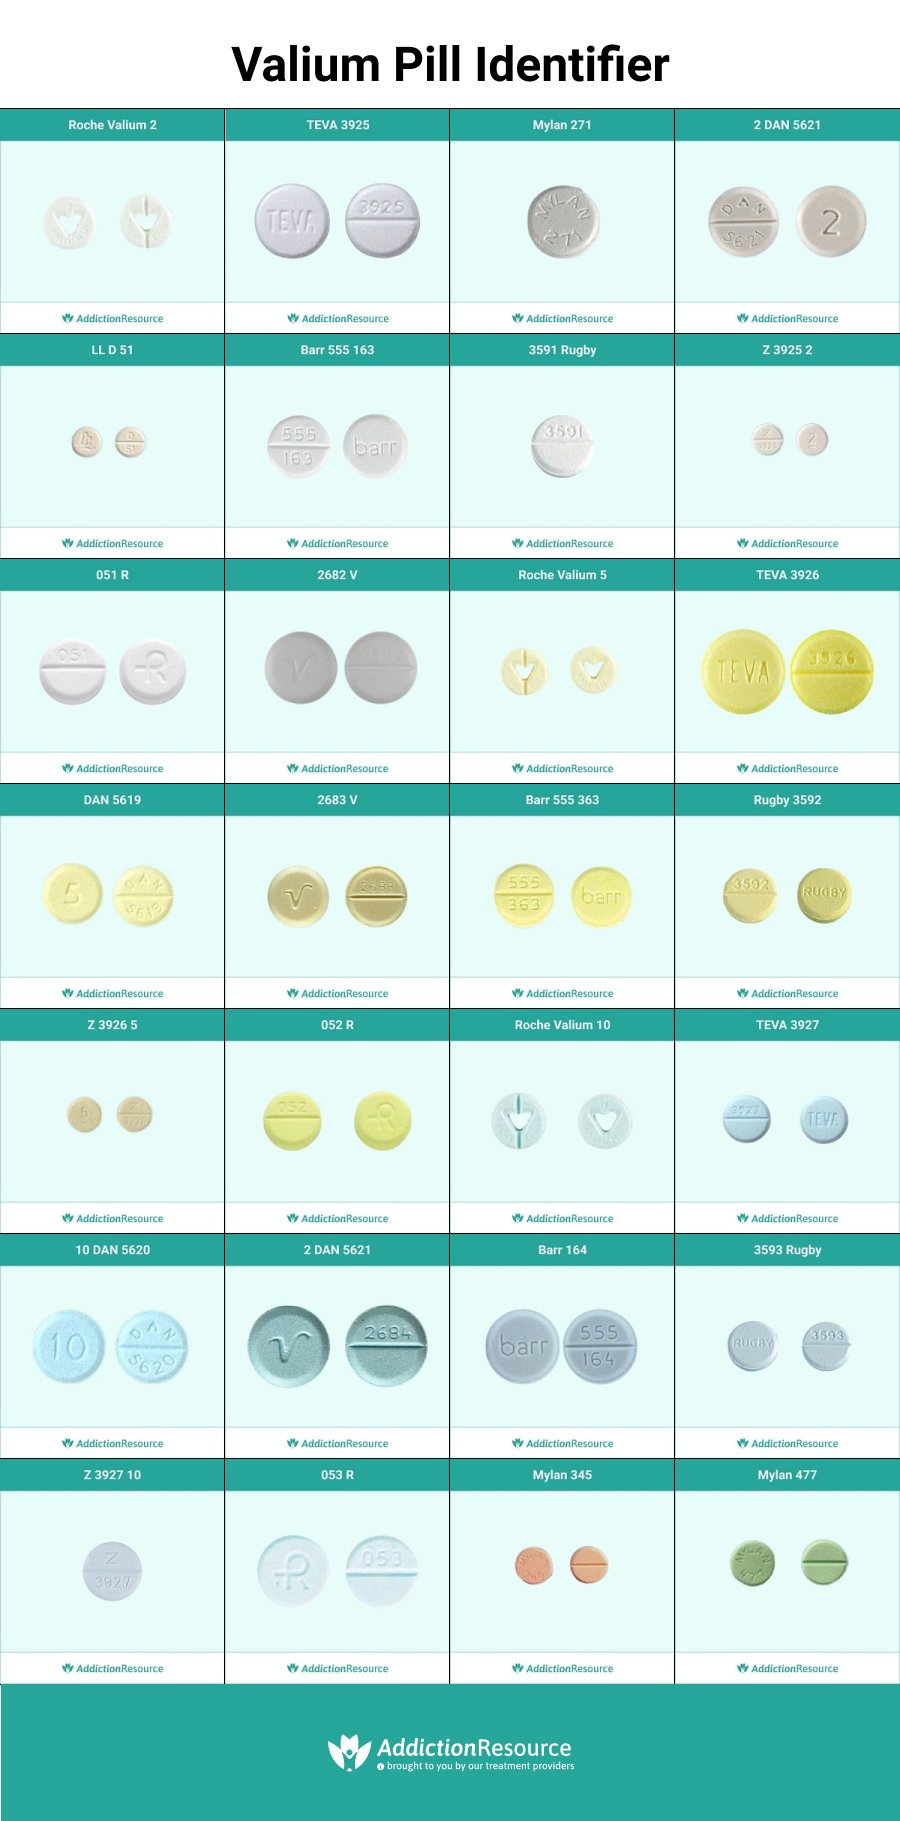 Forms and Types of Valium Pills